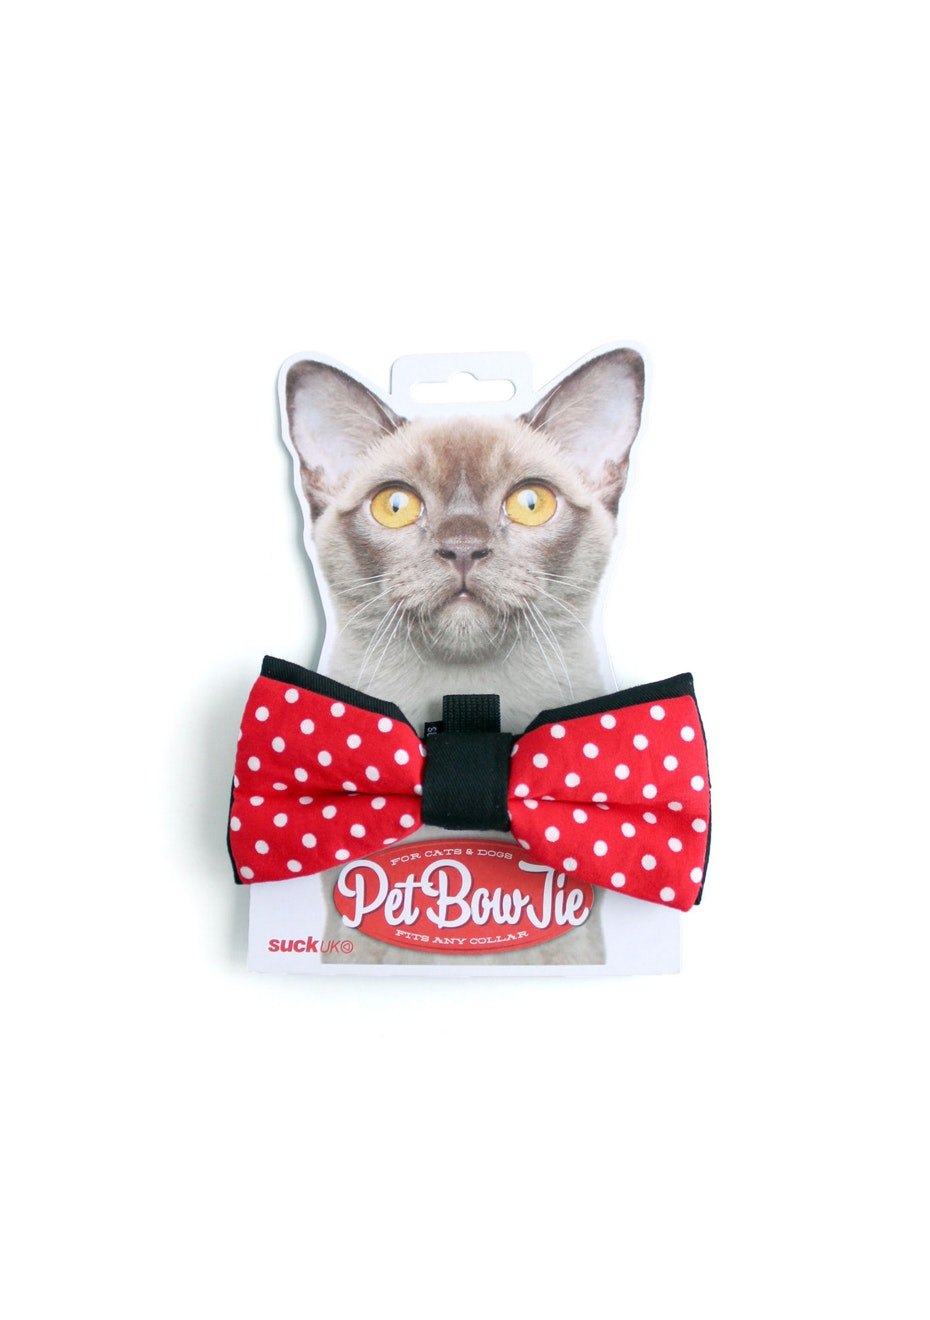 Suck UK - Pet Bow Tie